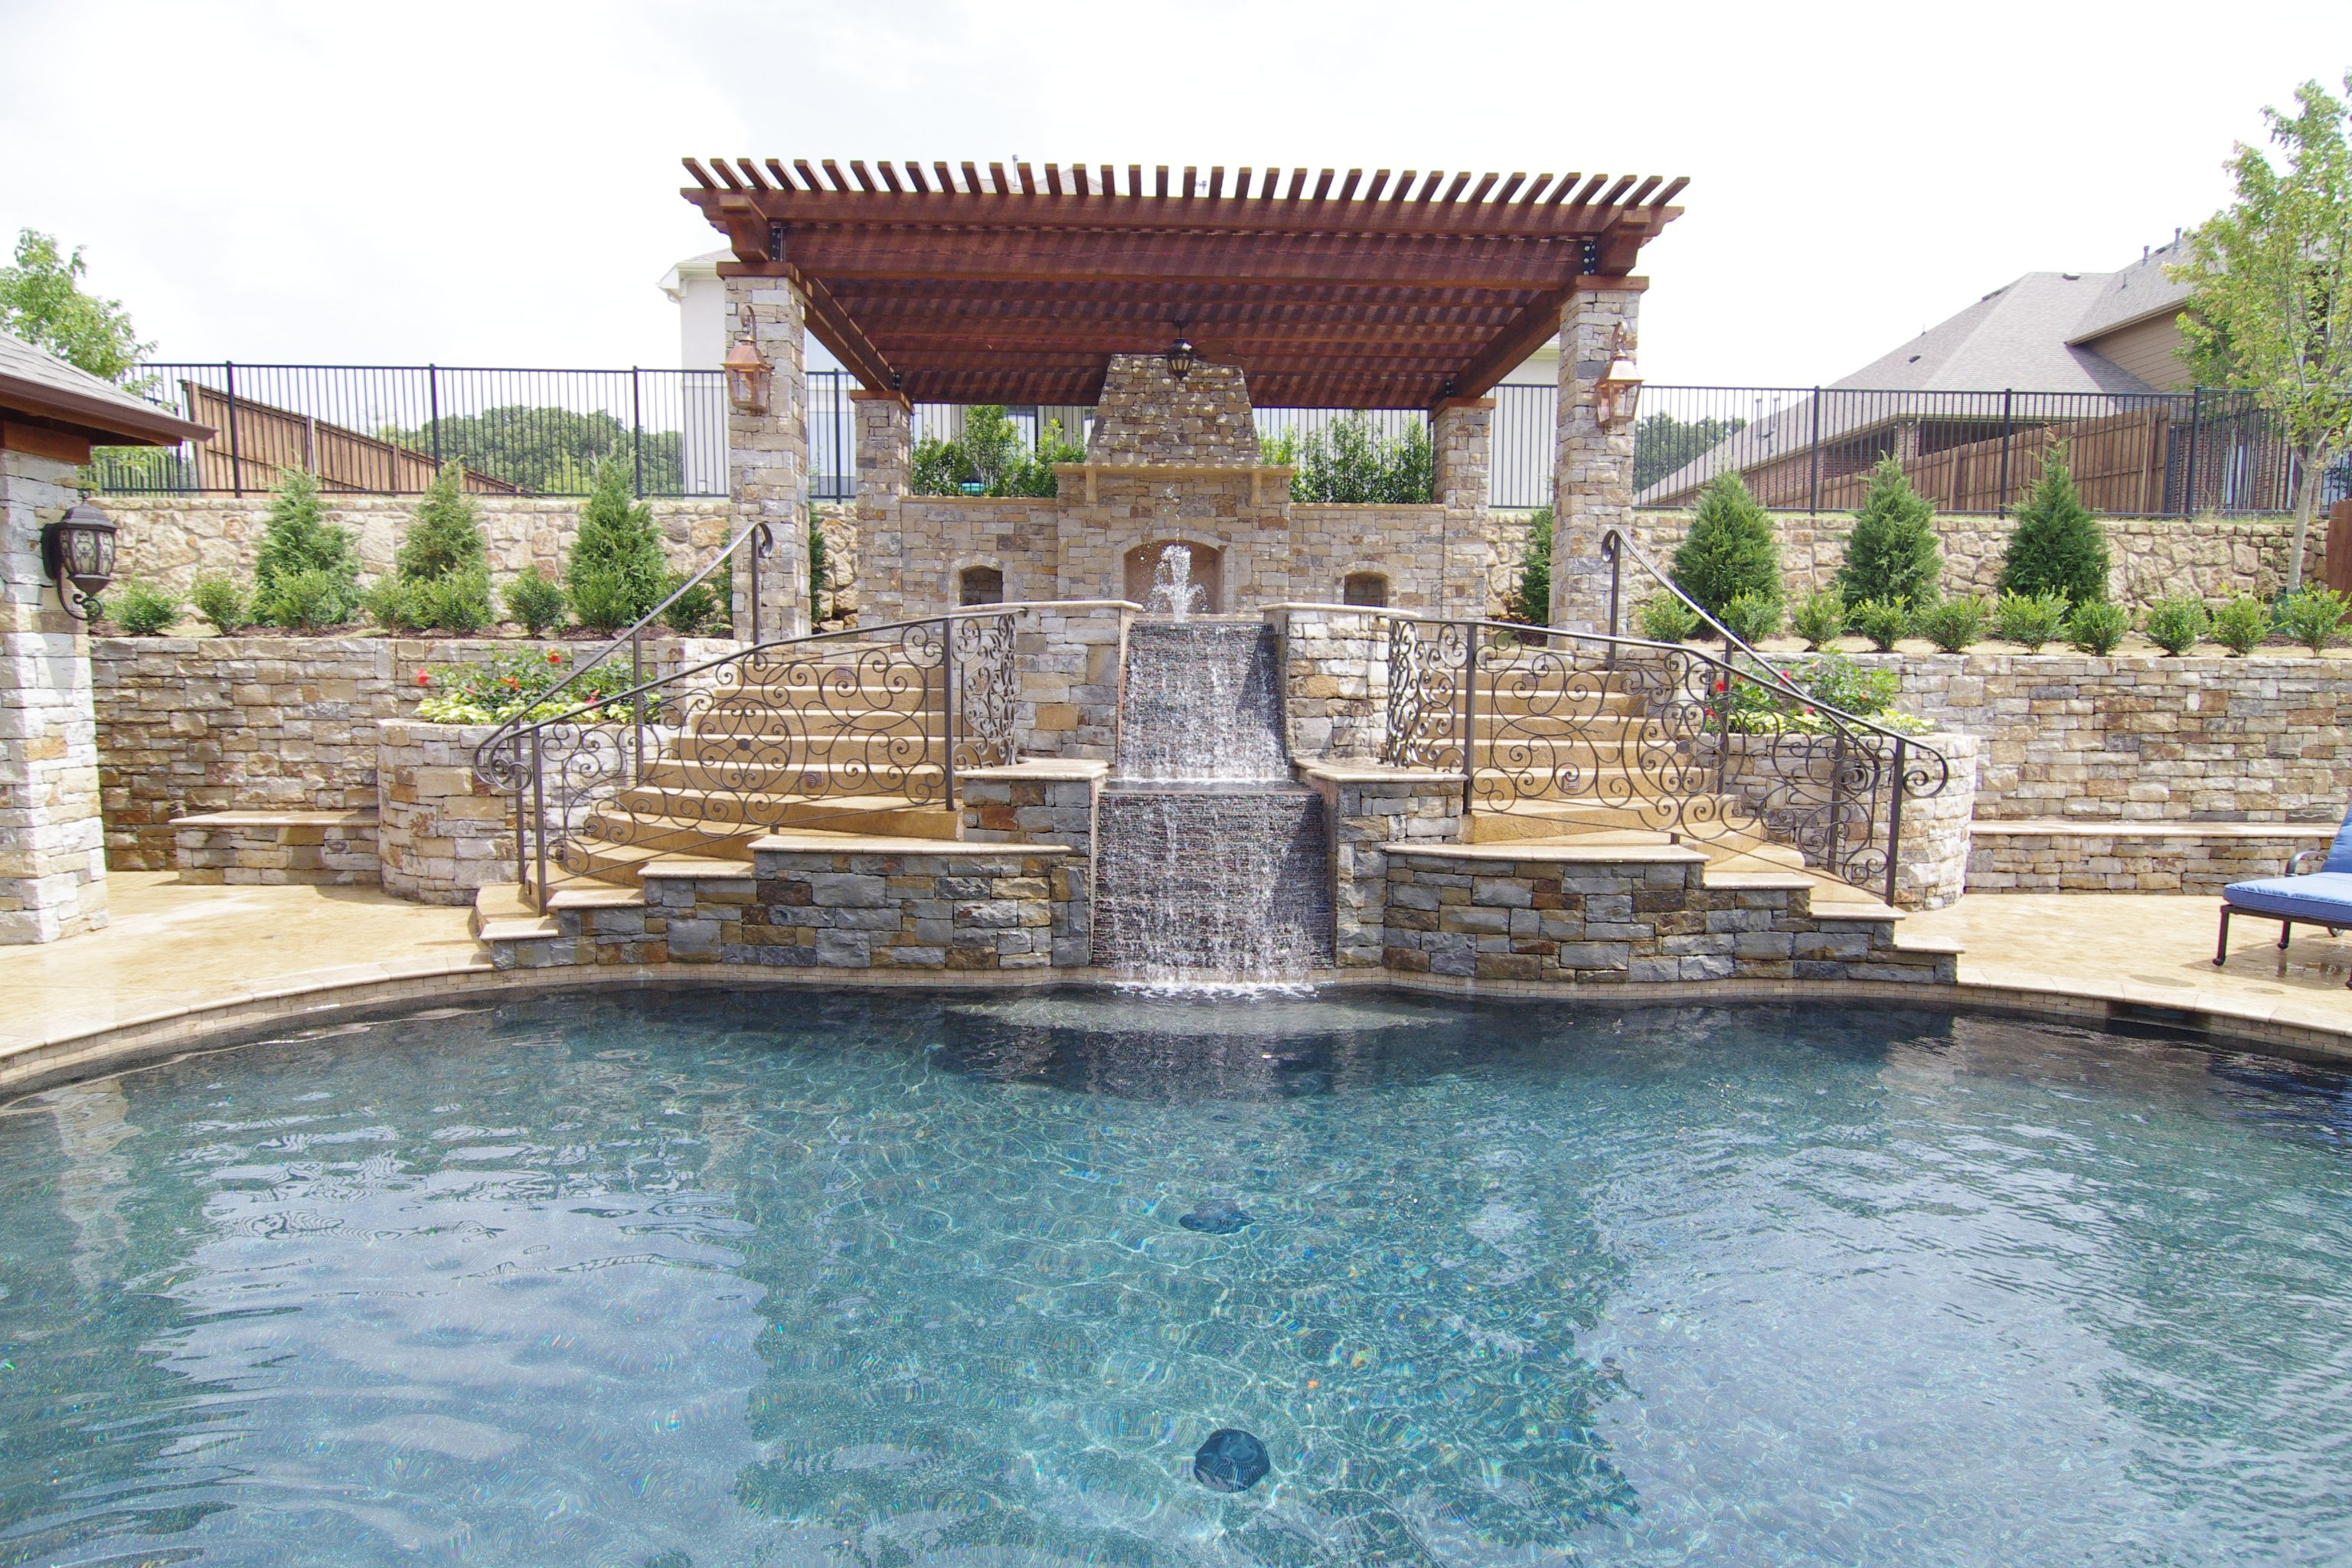 Swimming Pools Yard With Elevation Change Spa Is The Focal